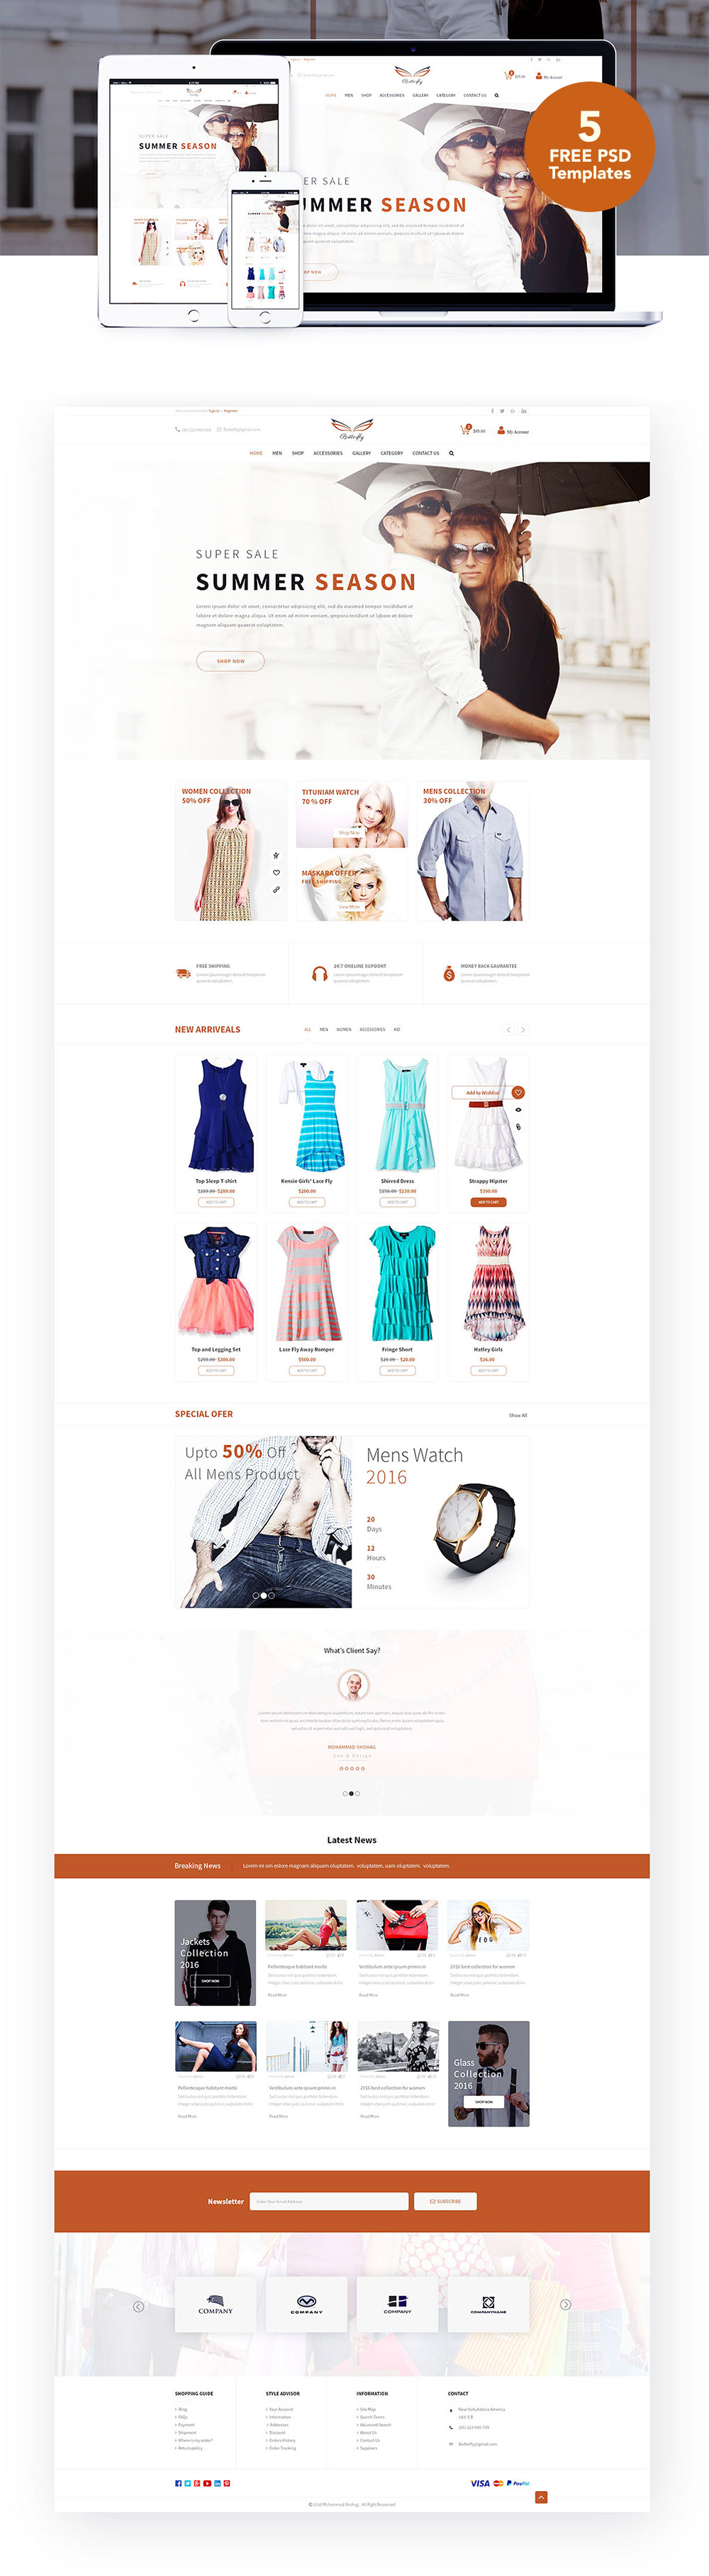 Topshop - Women's Clothing Women's Fashion & Trends Top e commerce fashion websites